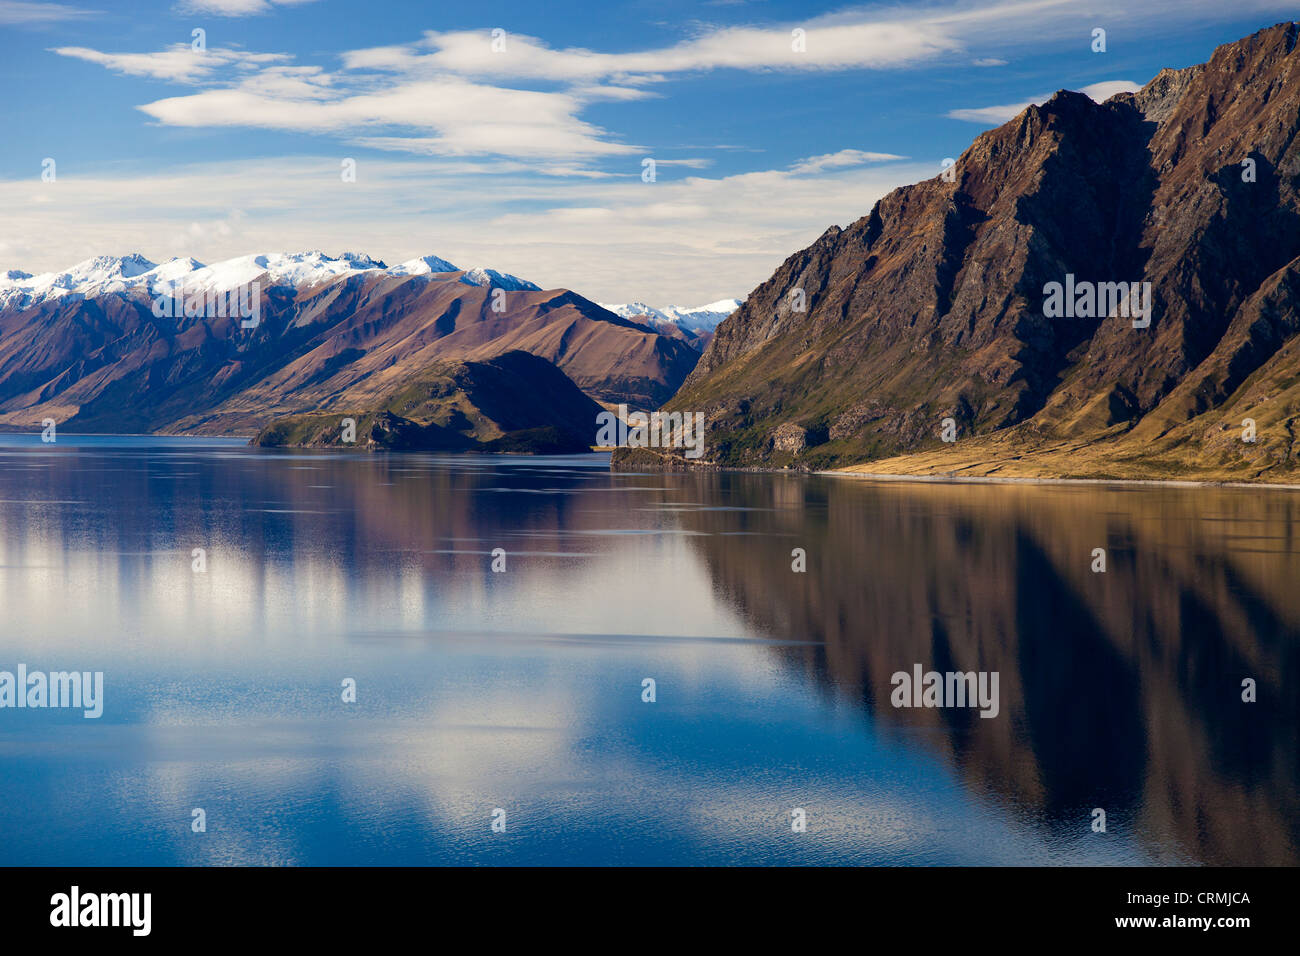 Lake Hawea, South Island of New Zealand - Stock Image